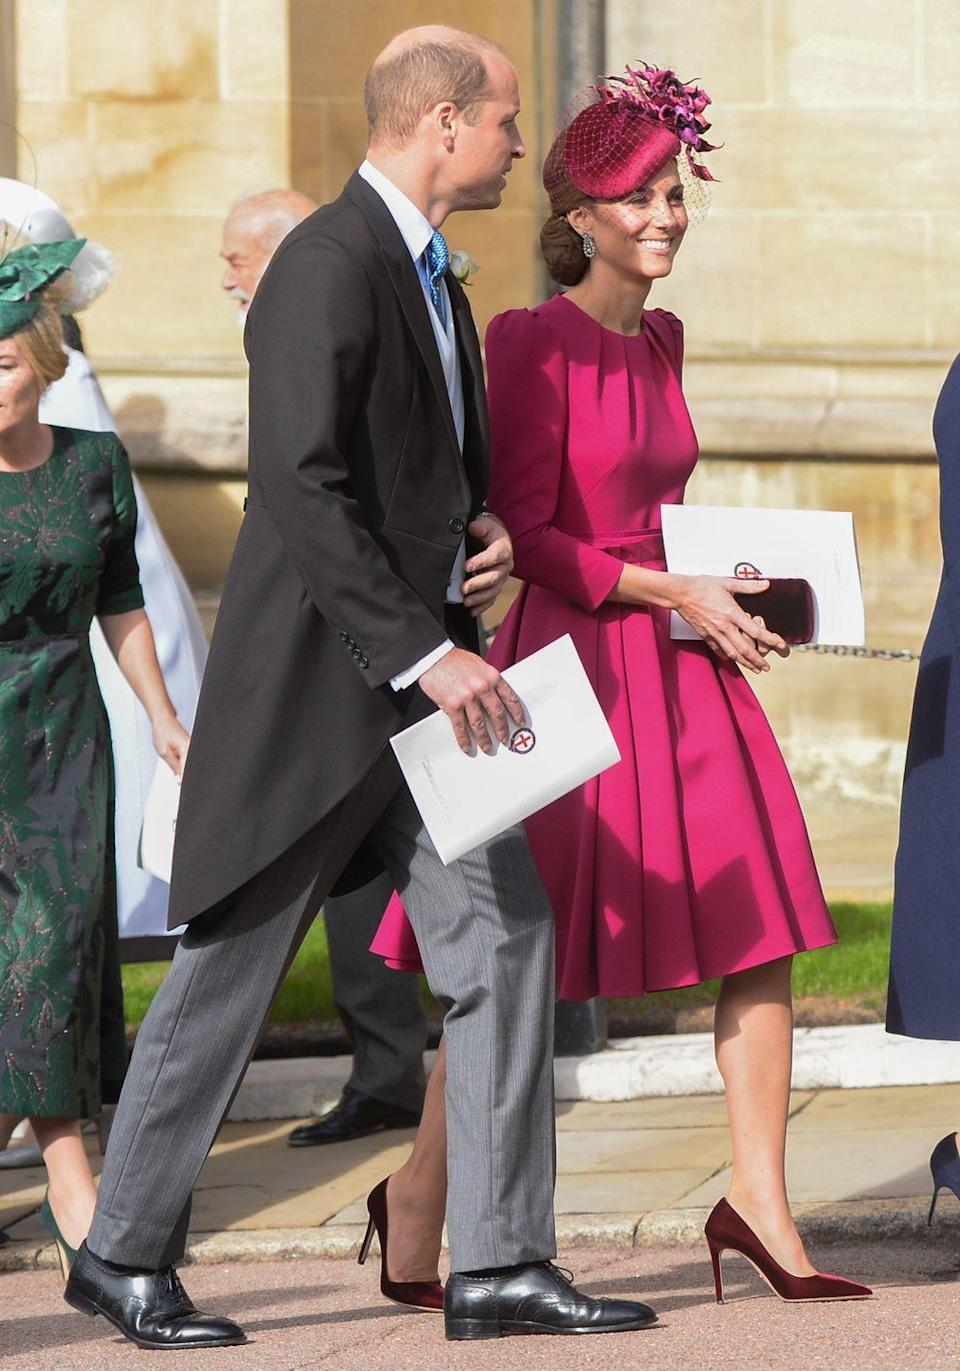 <p>Always elegant and expertly put together, Kate Middleton looked gorgeous in her Alexander McQueen dress with strong shoulders and pleated A-line skirt which she wore to Princess Eugenie's wedding at Windsor Castle. </p>